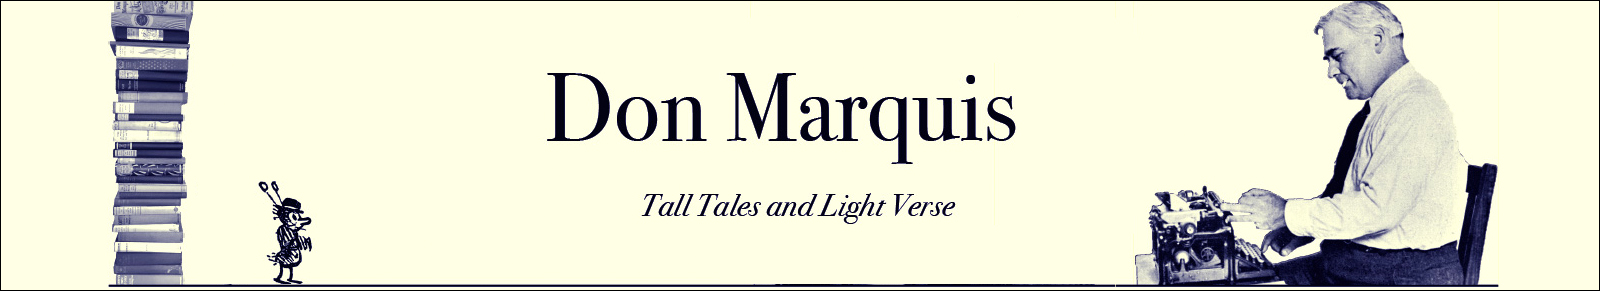 Don Marquis